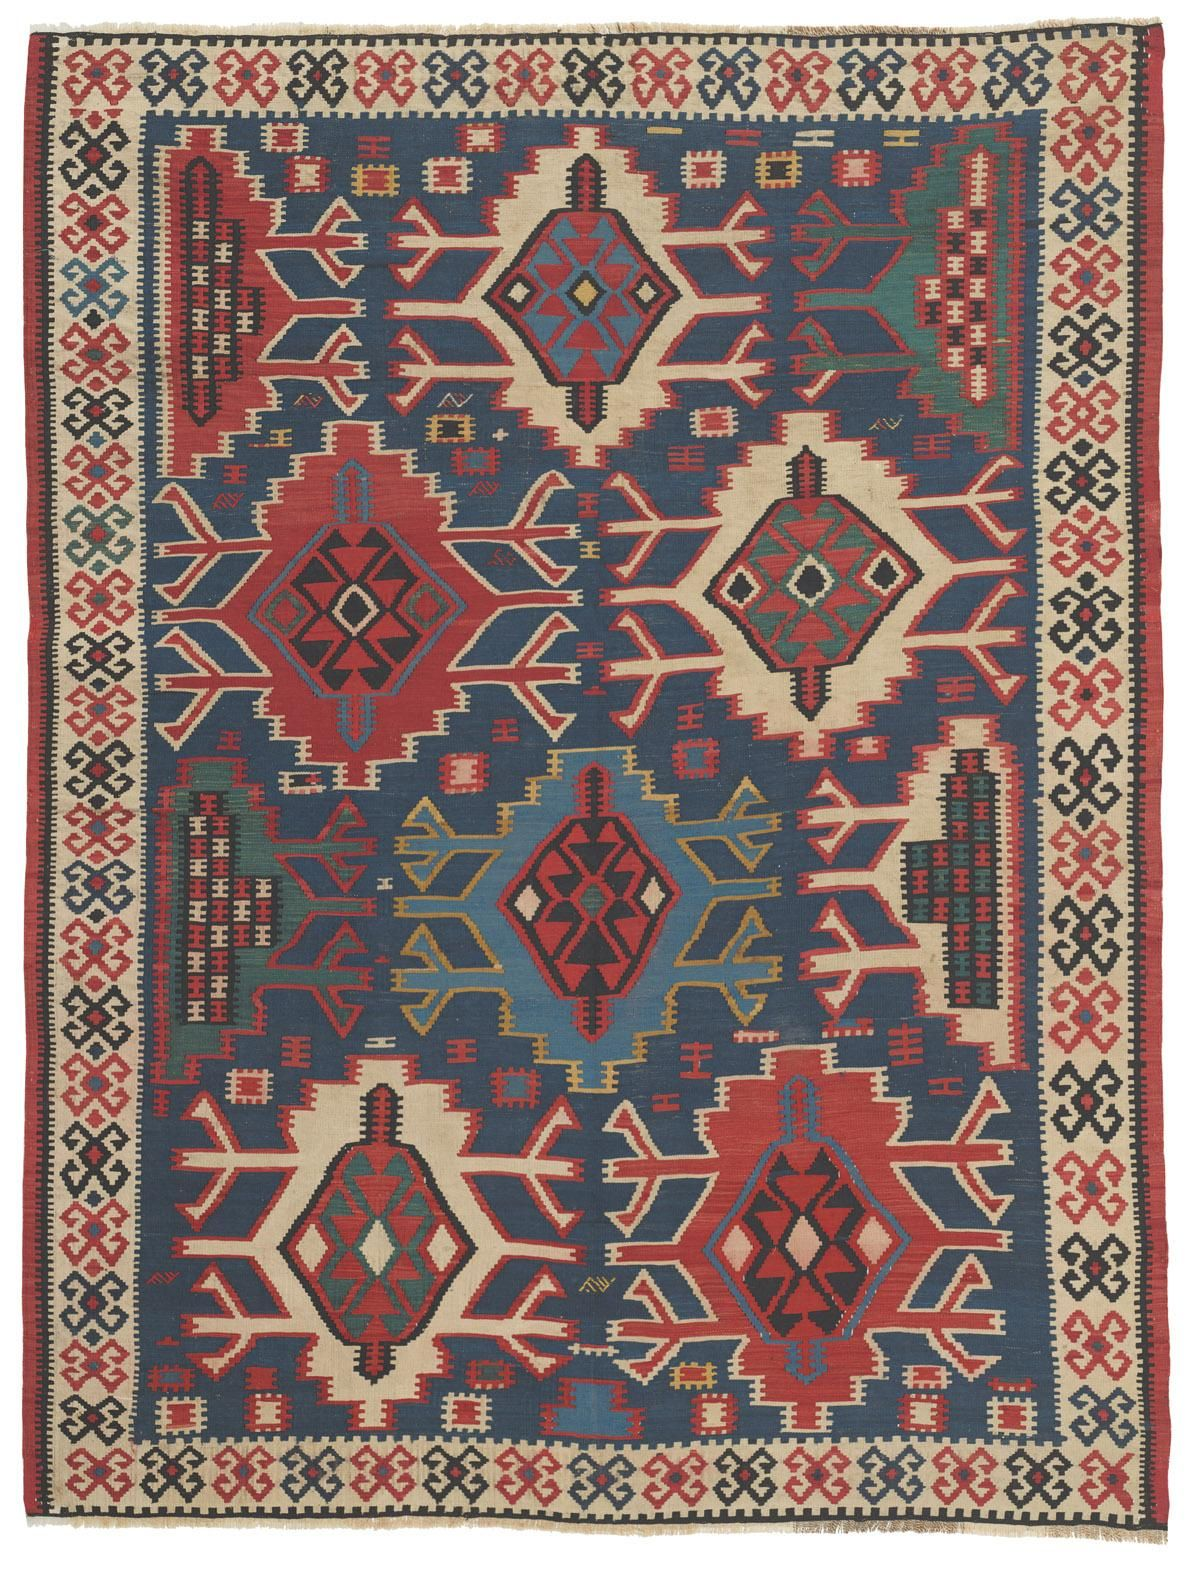 Caucasian Kuba Kilim 4ft 10in X 6ft 5in Circa 1850 This Is A Tremendously Energetic Consummately Crafted Antique C Rugs Oriental Rug Patterns Antique Rugs